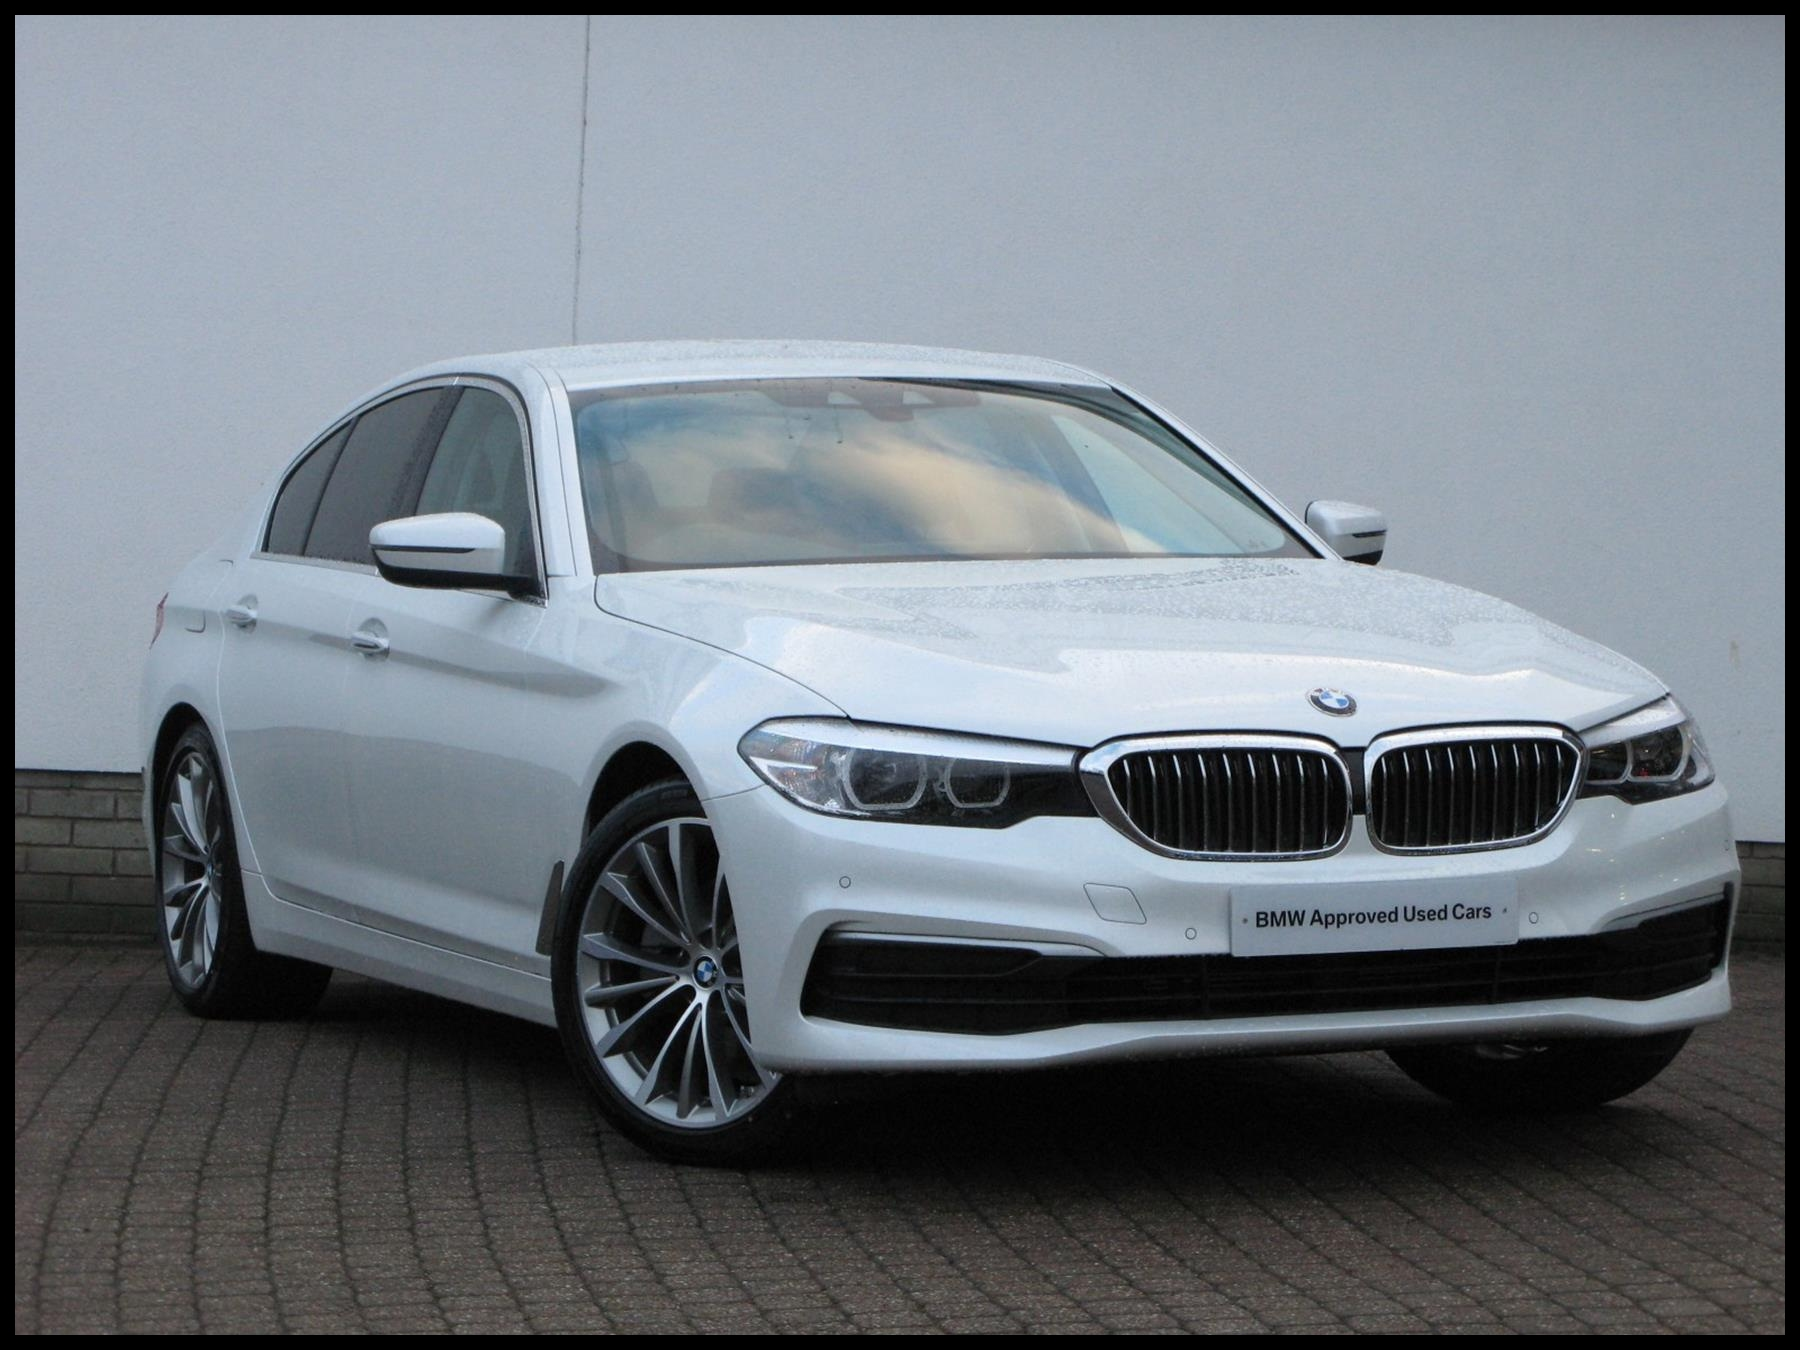 2018 Bmw 5 Series Reviews and Bmw M7 for Sale Used 2017 Bmw 5 Series